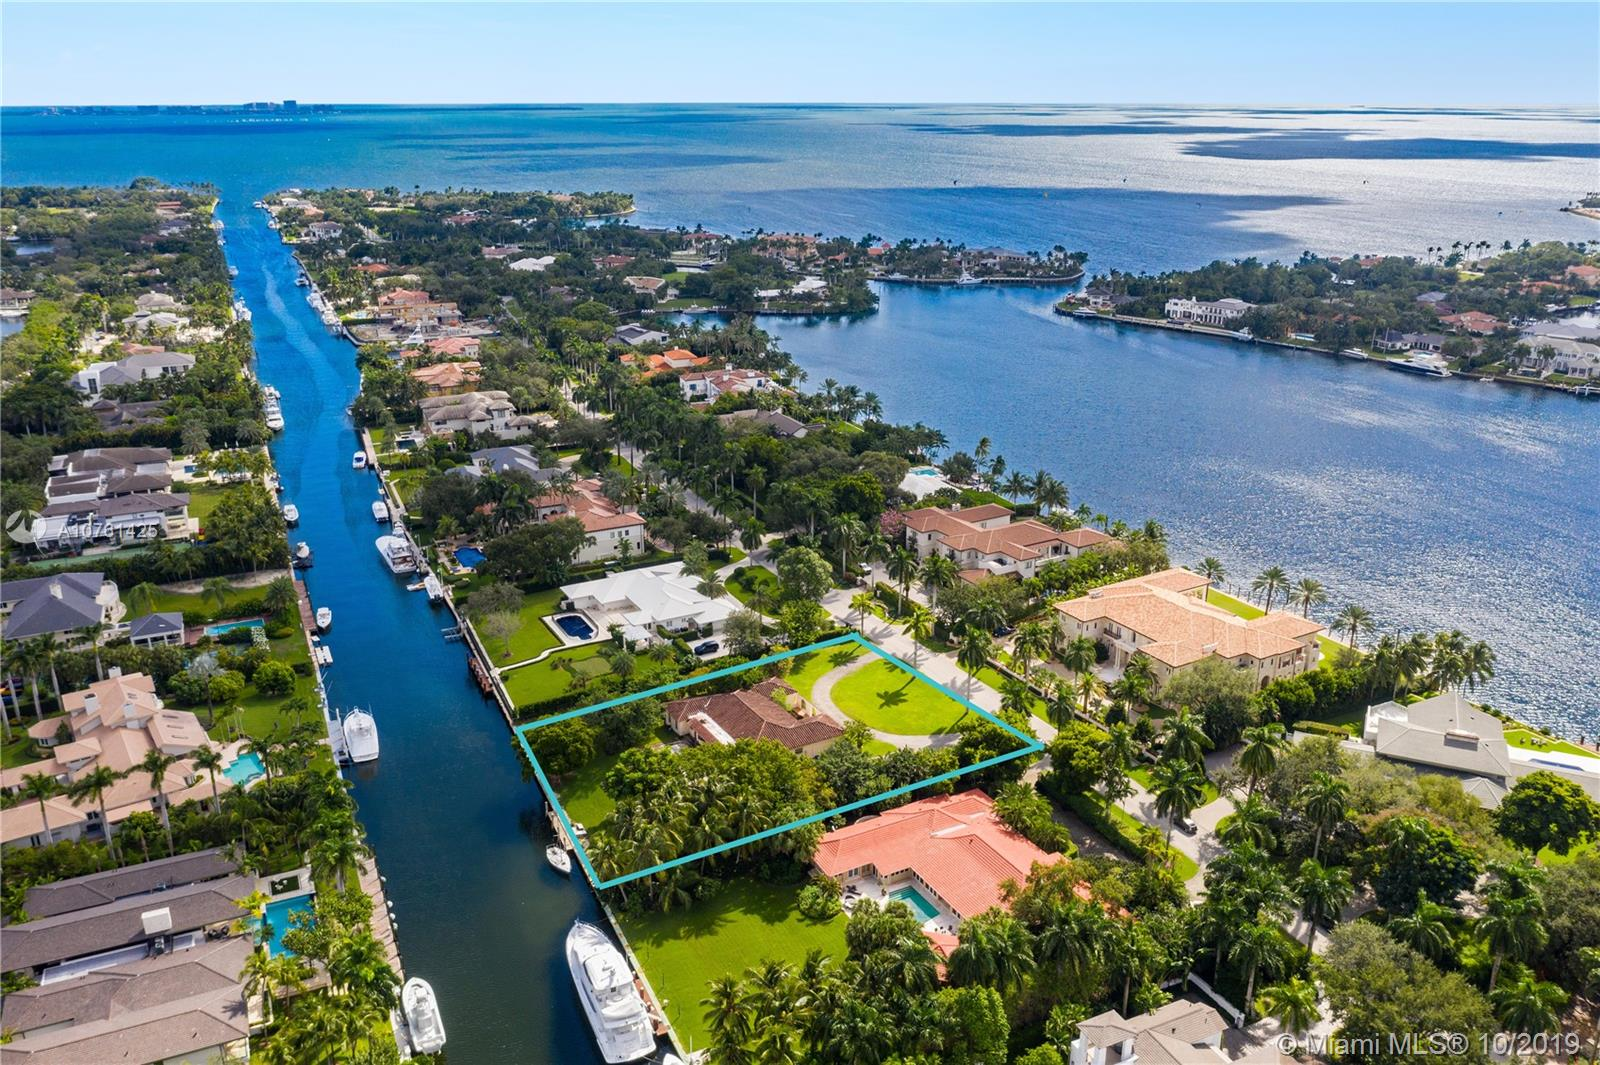 "Envision your ideal custom-built sanctuary in the prestigious and exclusive Gables Estates community. This rare development or redevelopment opportunity calls for your vision on a 40,711 SF Lot with 200 FT of water frontage. A private deepwater canal grants easy navigation with no bridges into Biscayne Bay. The property comes with varying types of palms and exceptional shade-bearing spaces near the rear and side perimeters. It all starts with the right location, the rest is a Bay breeze away. ""If you can dream it, you can do it"" - Walt Disney."